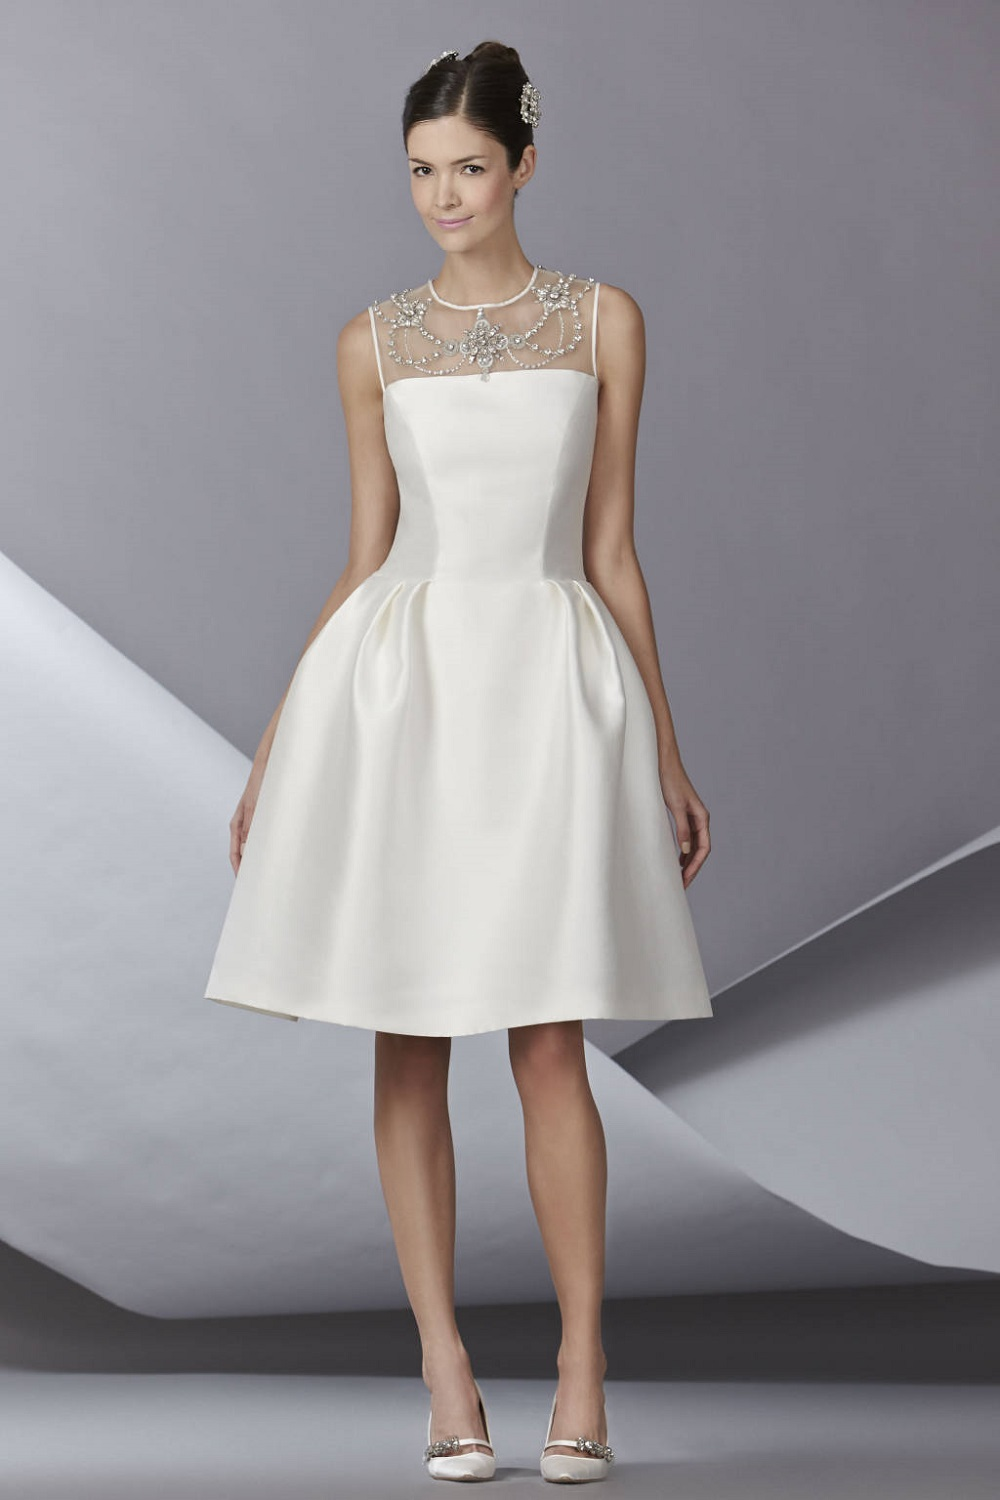 Top 8 Wedding Dress Brands : Top wedding dress designers inspiration trends